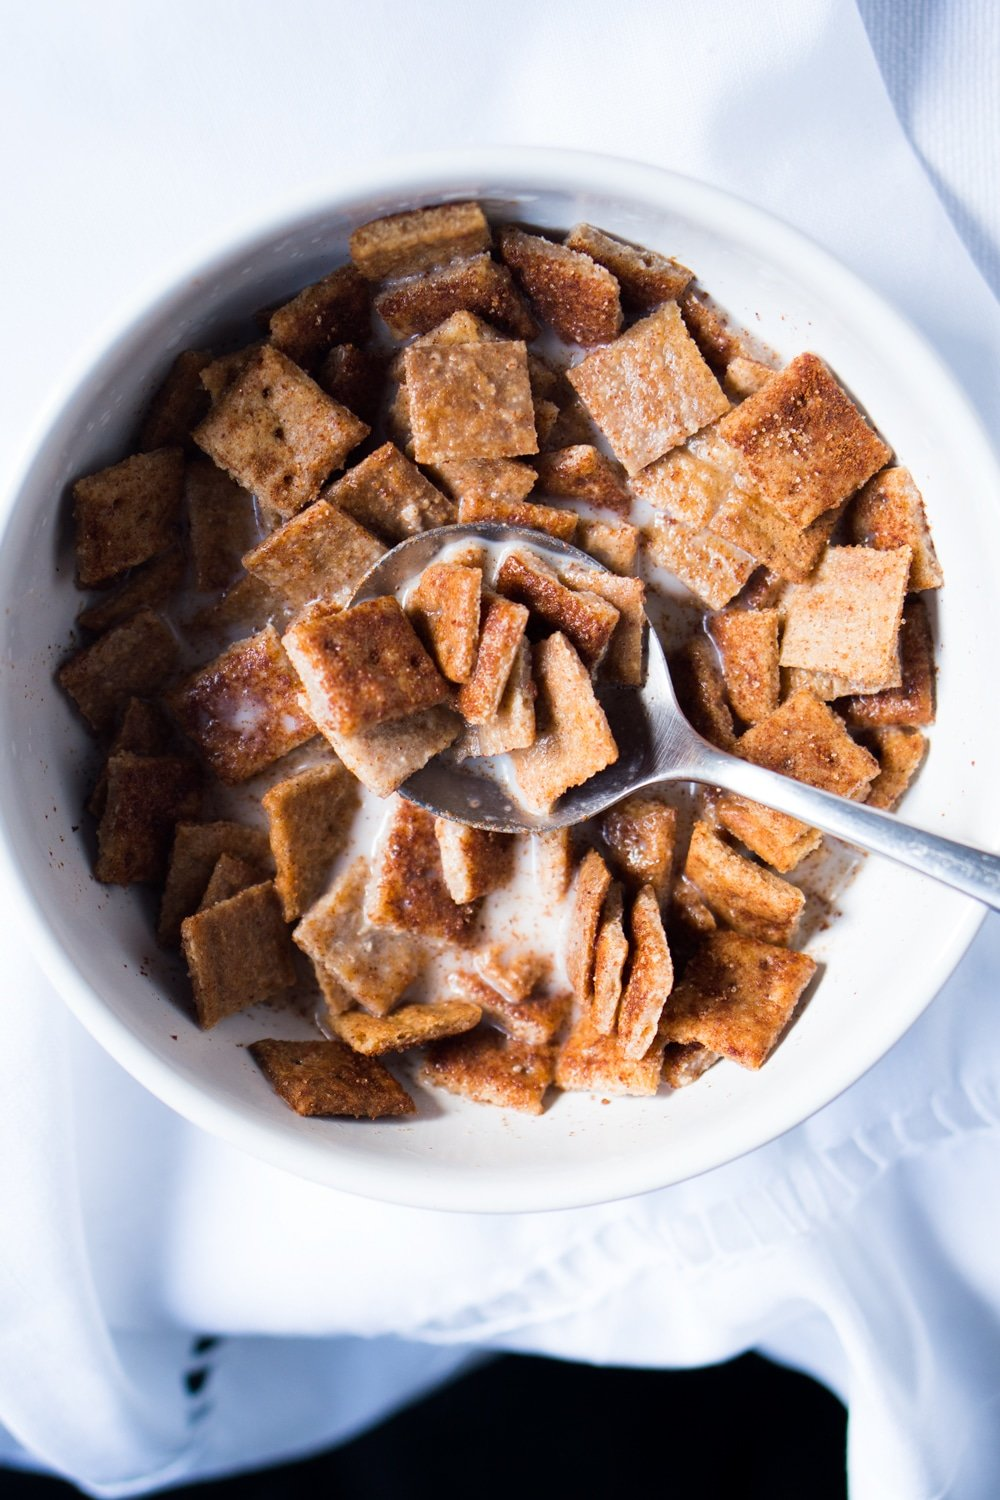 Gluten Free, Low Carb & Keto Cinnamon Toast Crunch Cereal #keto #ketobreakfast #lowcarb #cereal #glutenfree #healthyrecipes